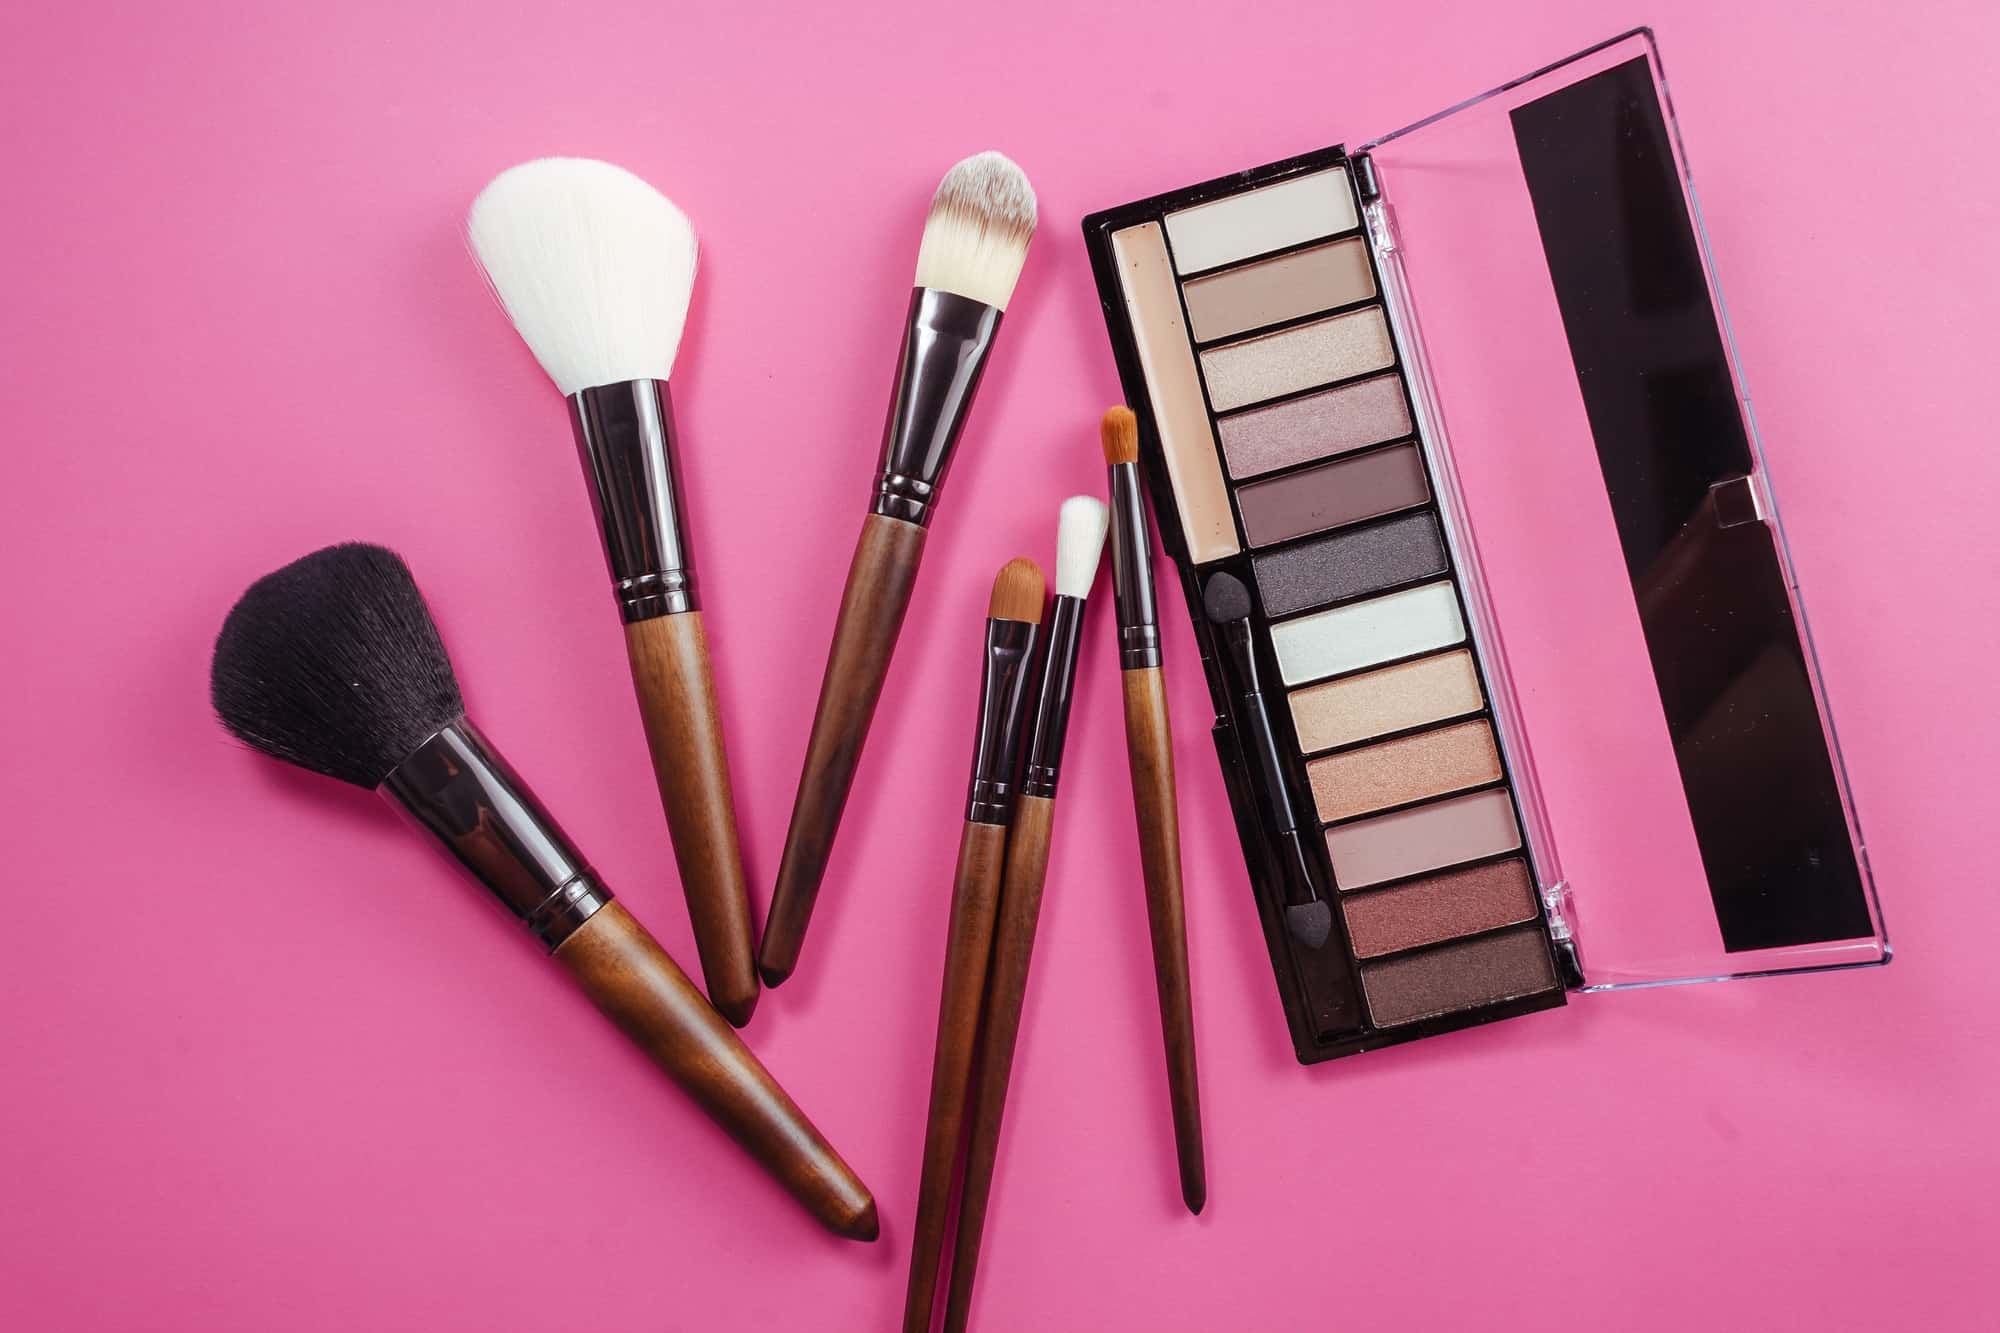 Set of colorful cosmetics on pink background